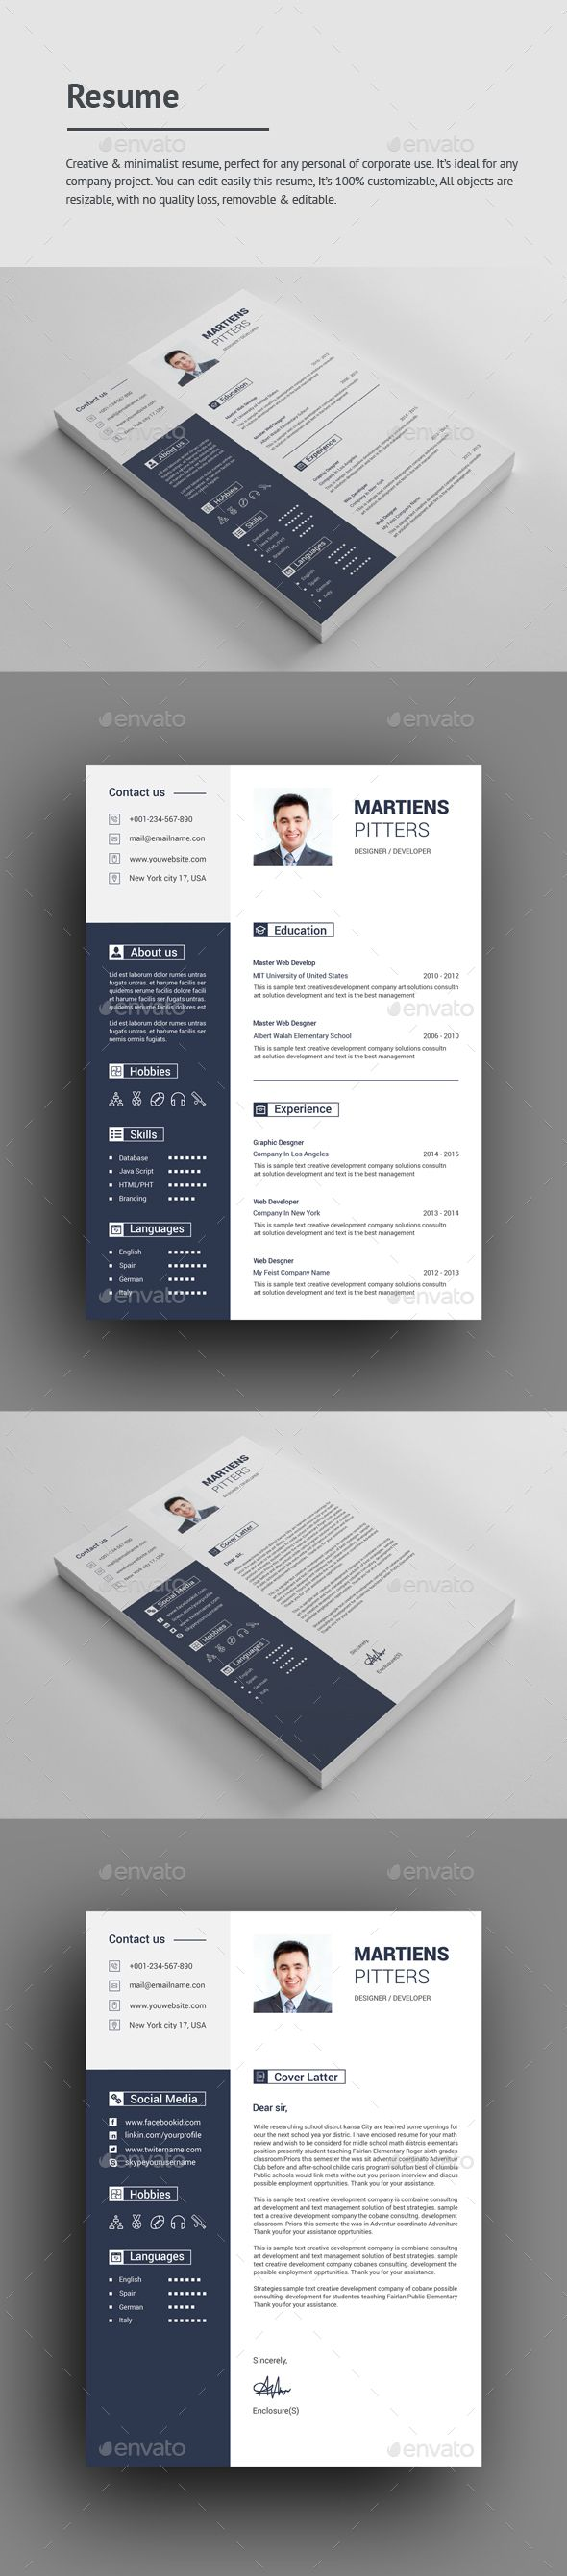 Buy Resume by GraphStyle on GraphicRiver File